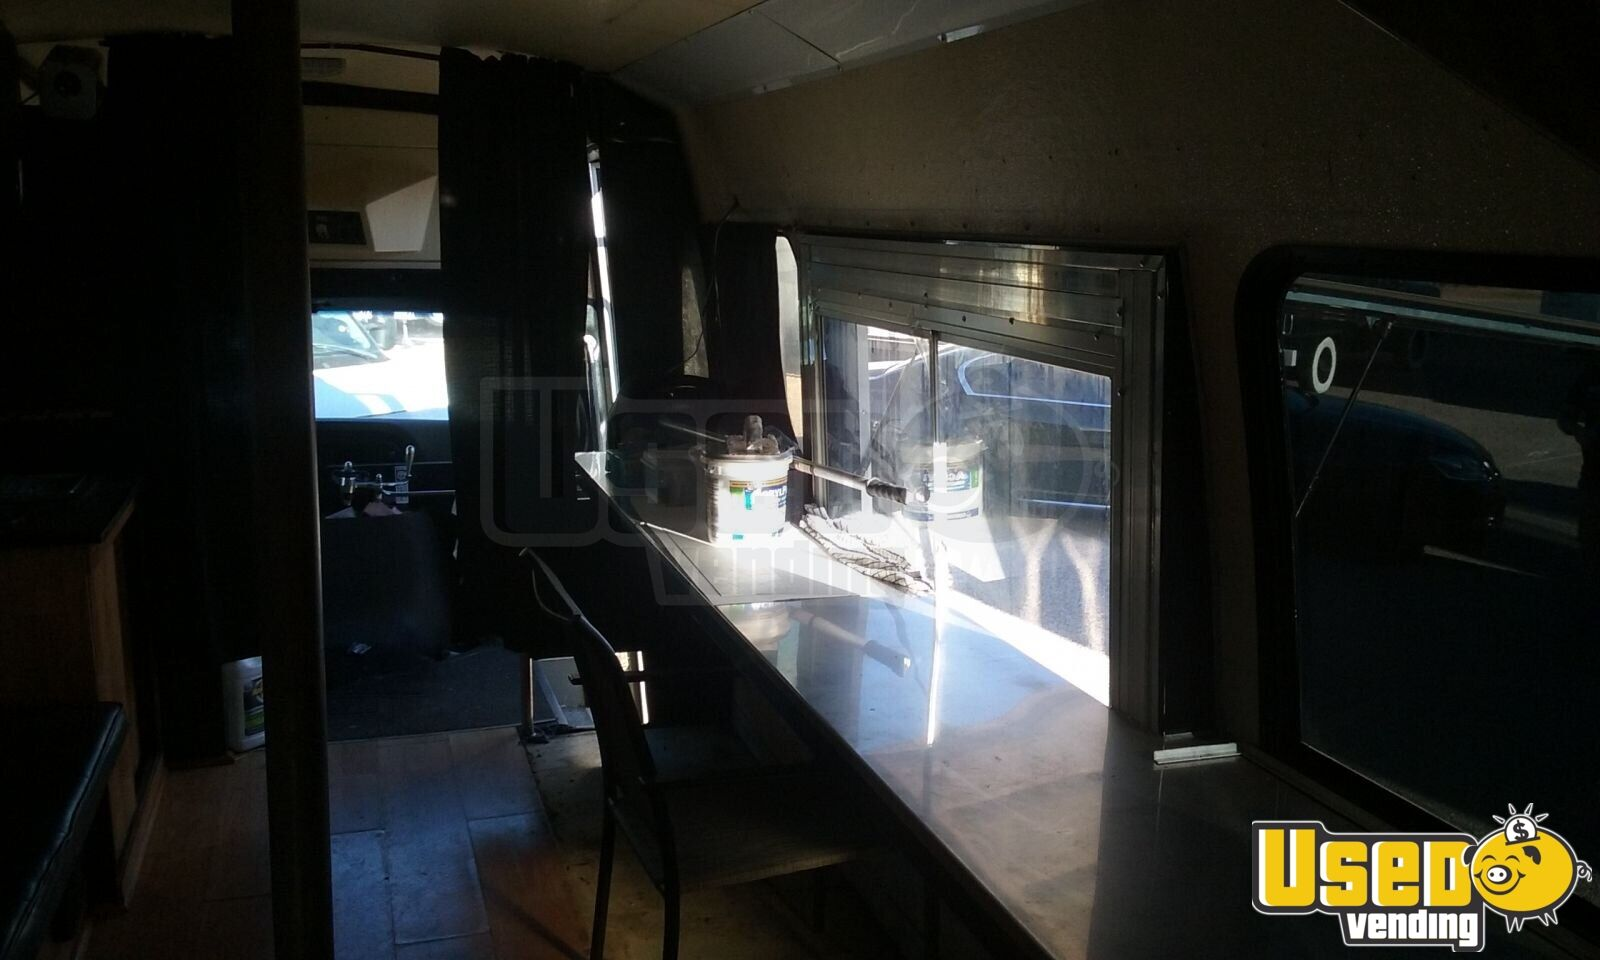 1995 Ford Econ Lt318 All-purpose Food Truck Work Table Arizona Diesel Engine for Sale - 8